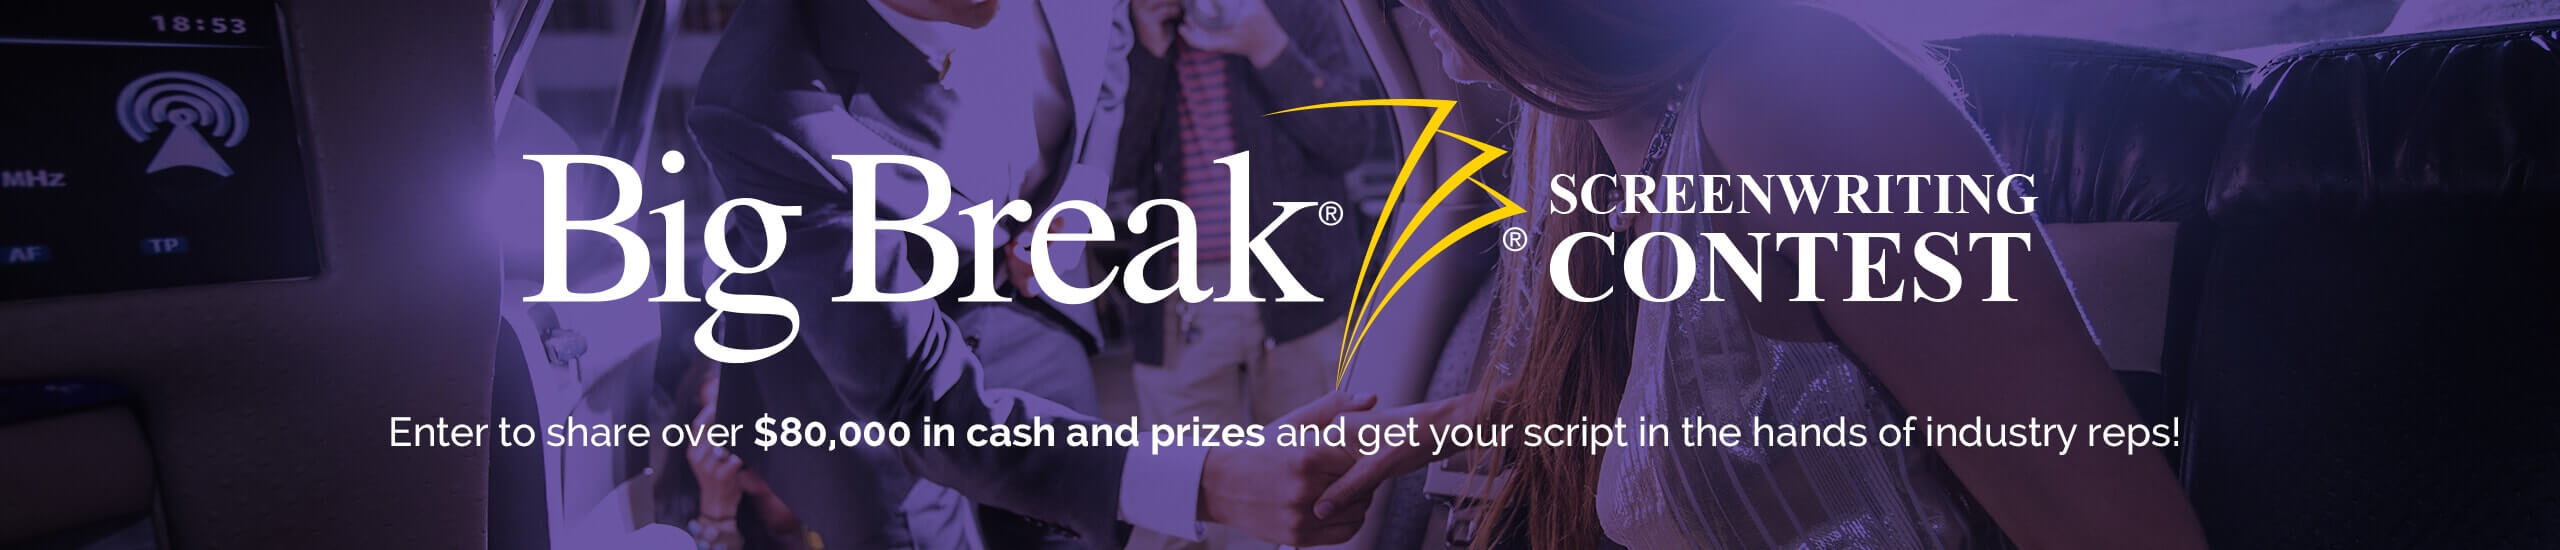 Best Screenwriting Contests - Big Break Final Draft Screenplay Competition